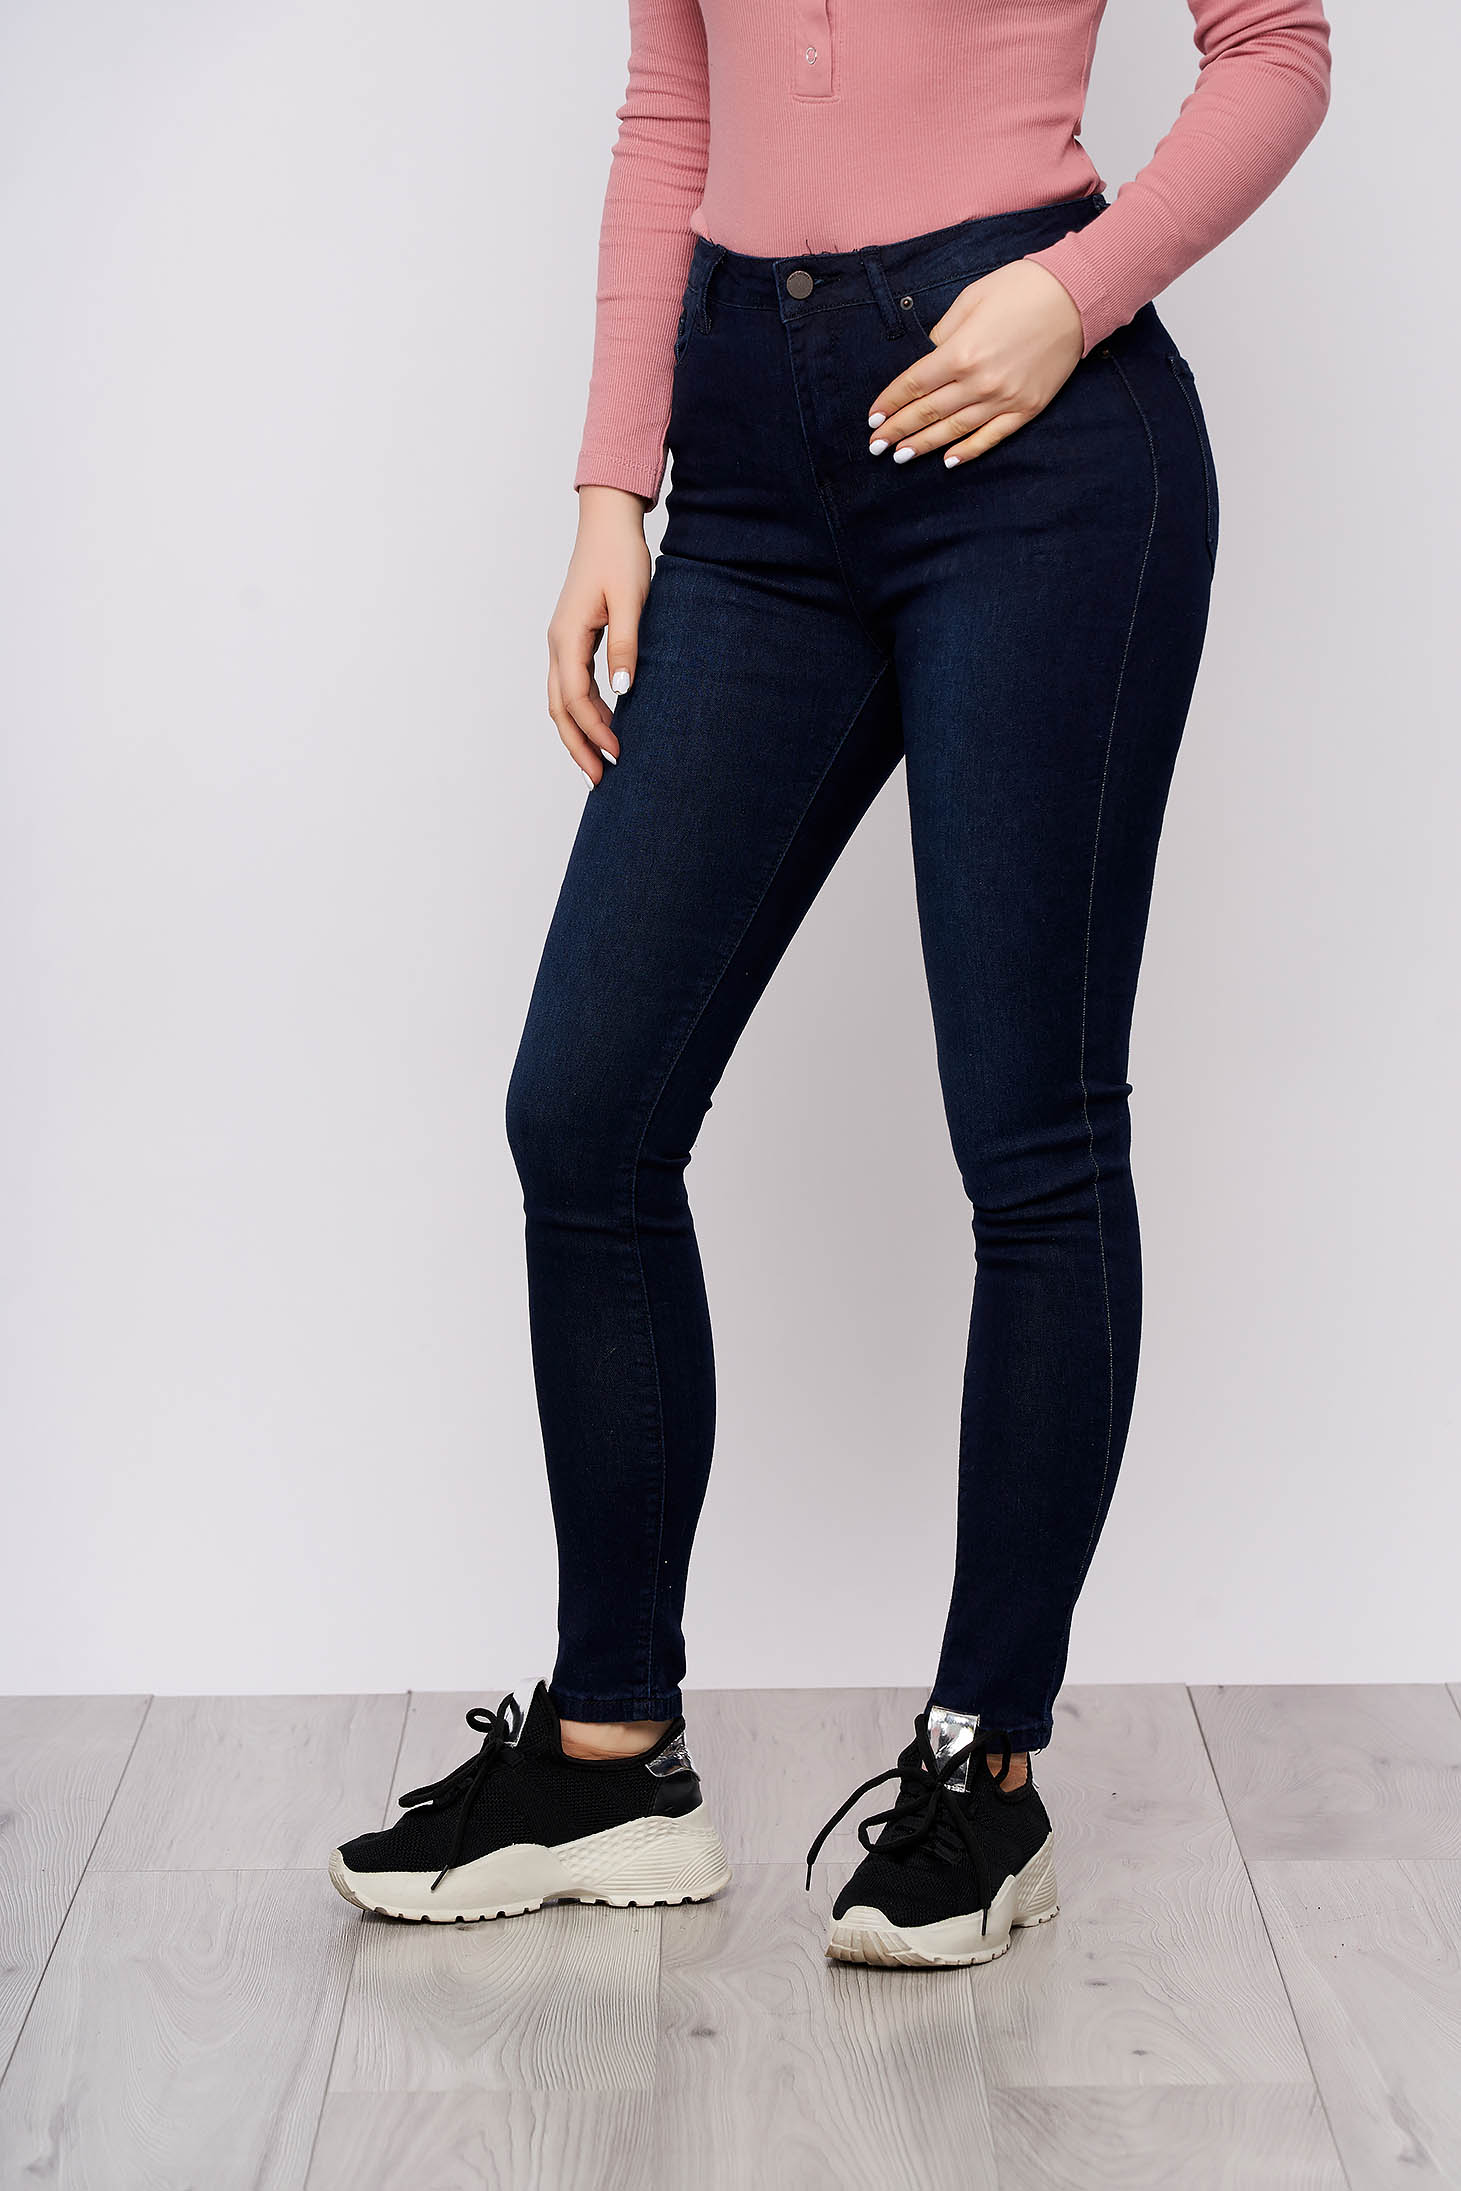 Darkblue trousers casual denim high waisted conical with pockets